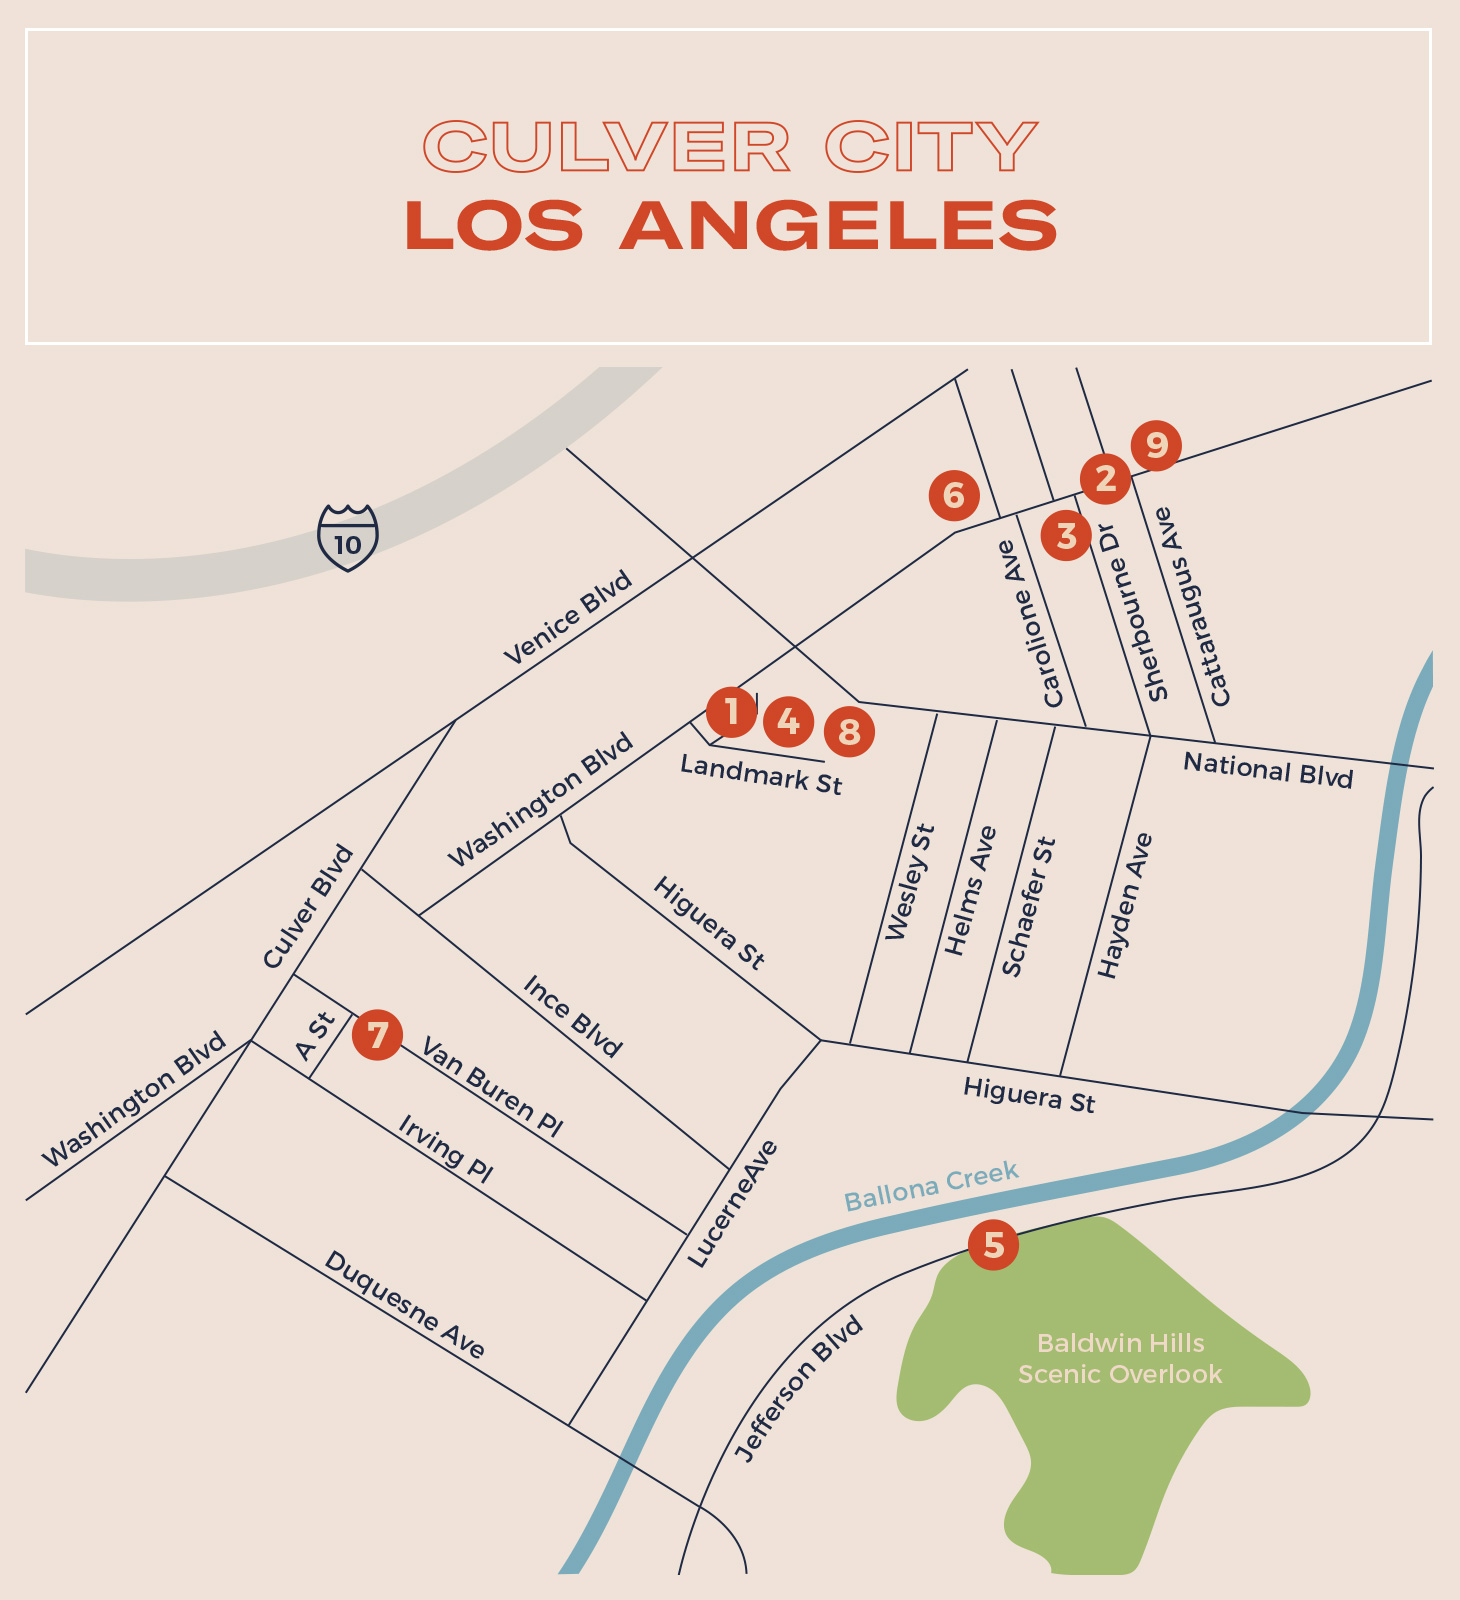 Culver City Los Angeles Map